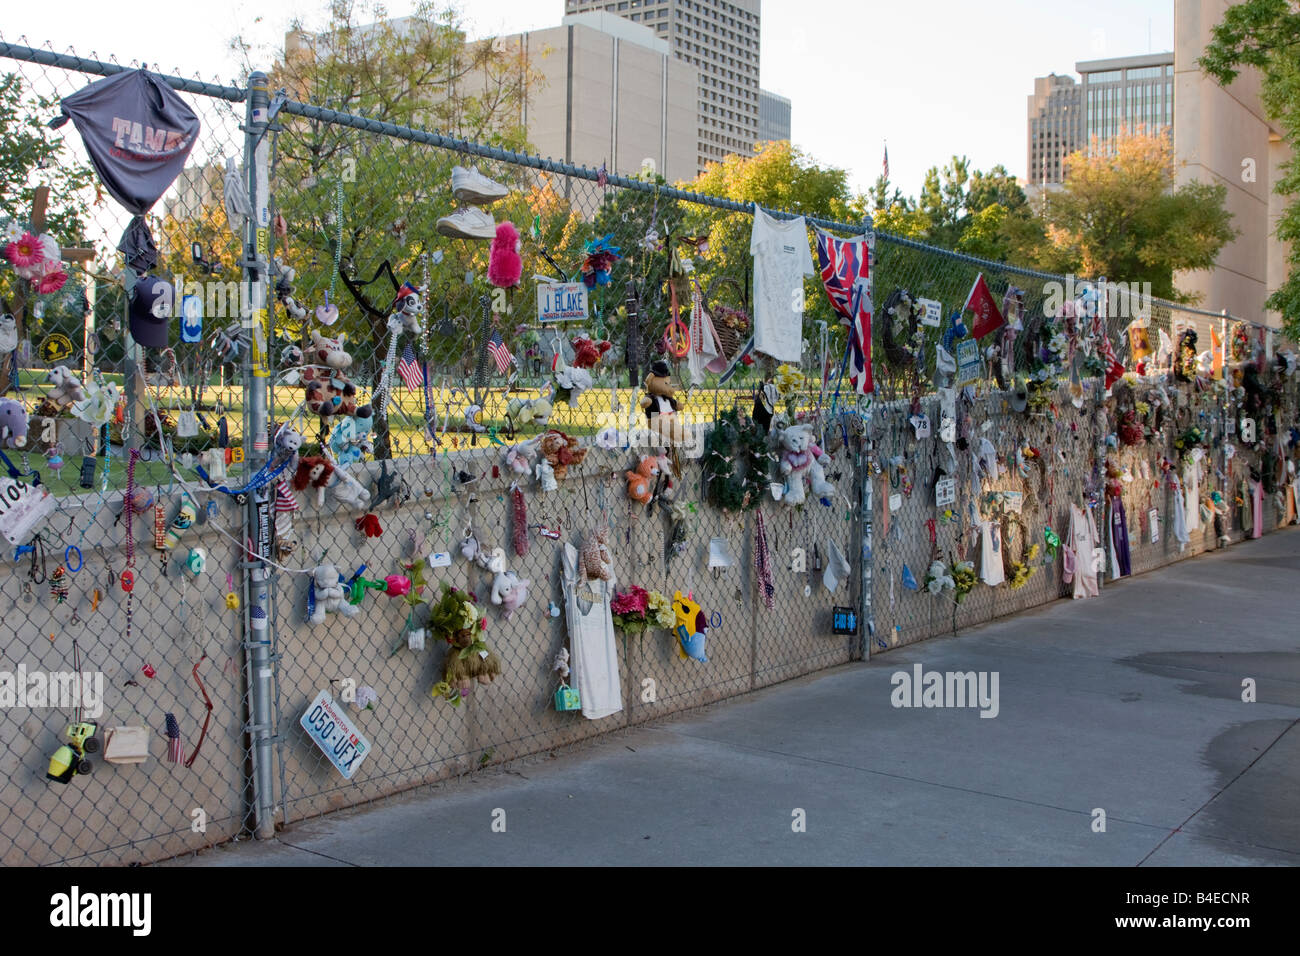 Oklahoma City, Oklahoma, USA. OKC National Memorial Mementos on Fence, Toys, Dolls. Clothing of those lost in the - Stock Image